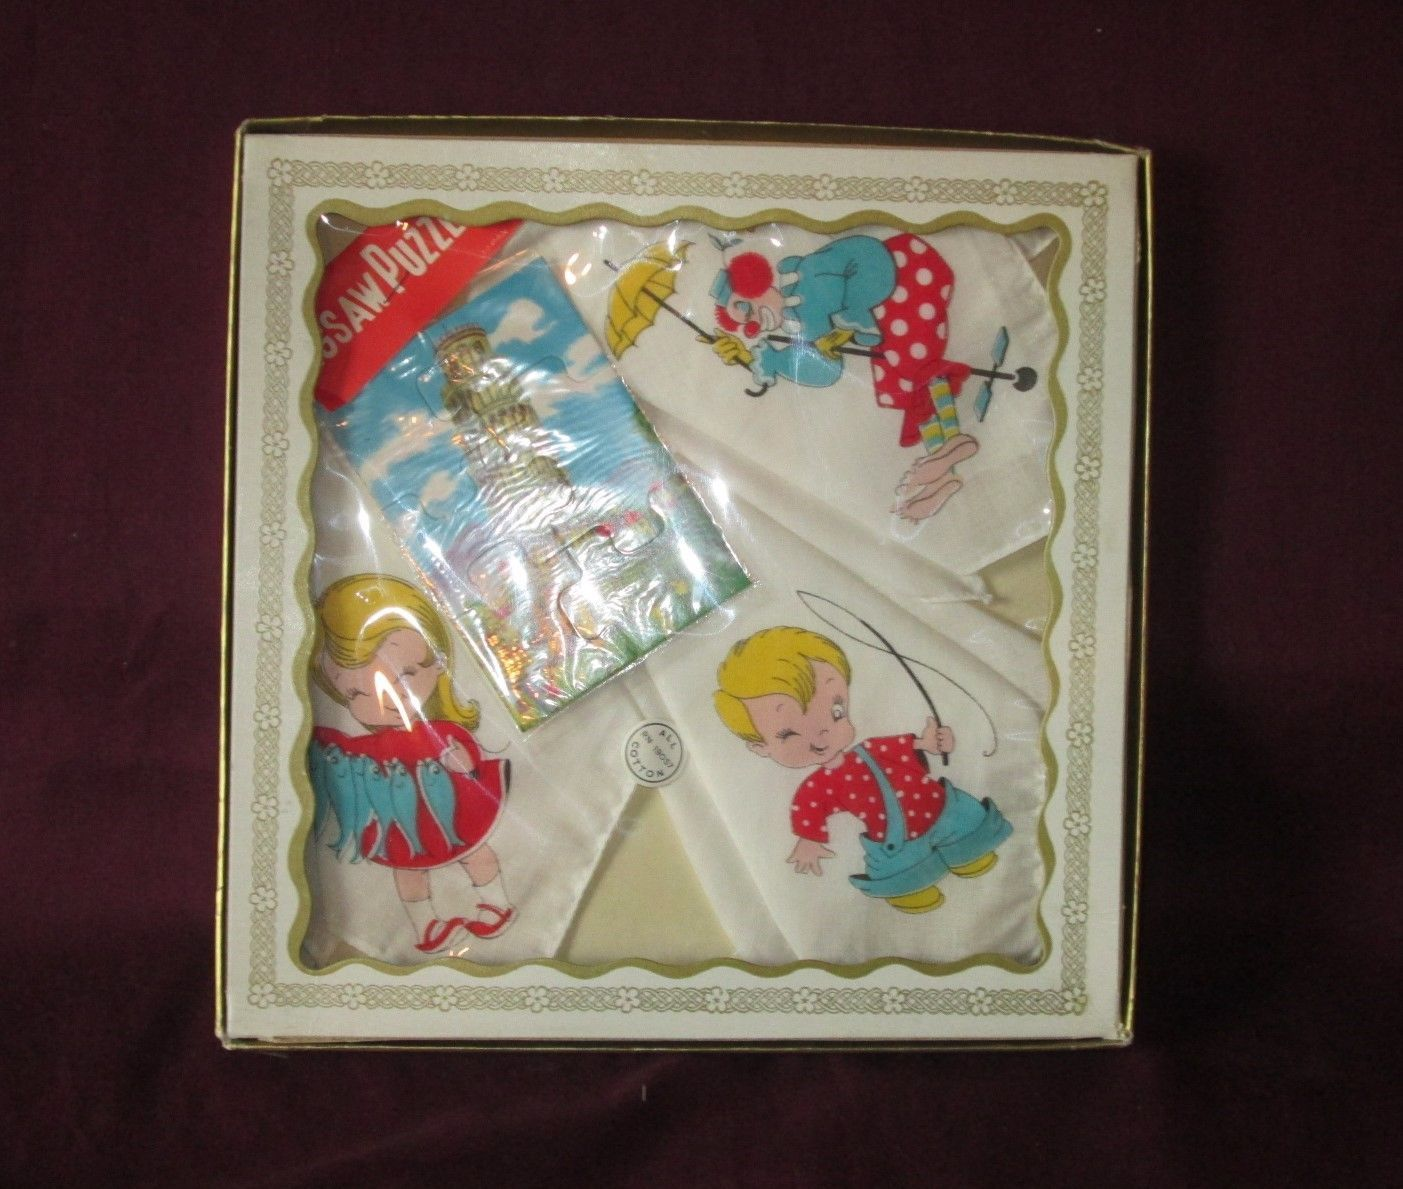 Vintage BOXED Set of 3 Childrens HANKIES HANDKERCHIEFS with Jigsaw Puzzle -1950s image 2